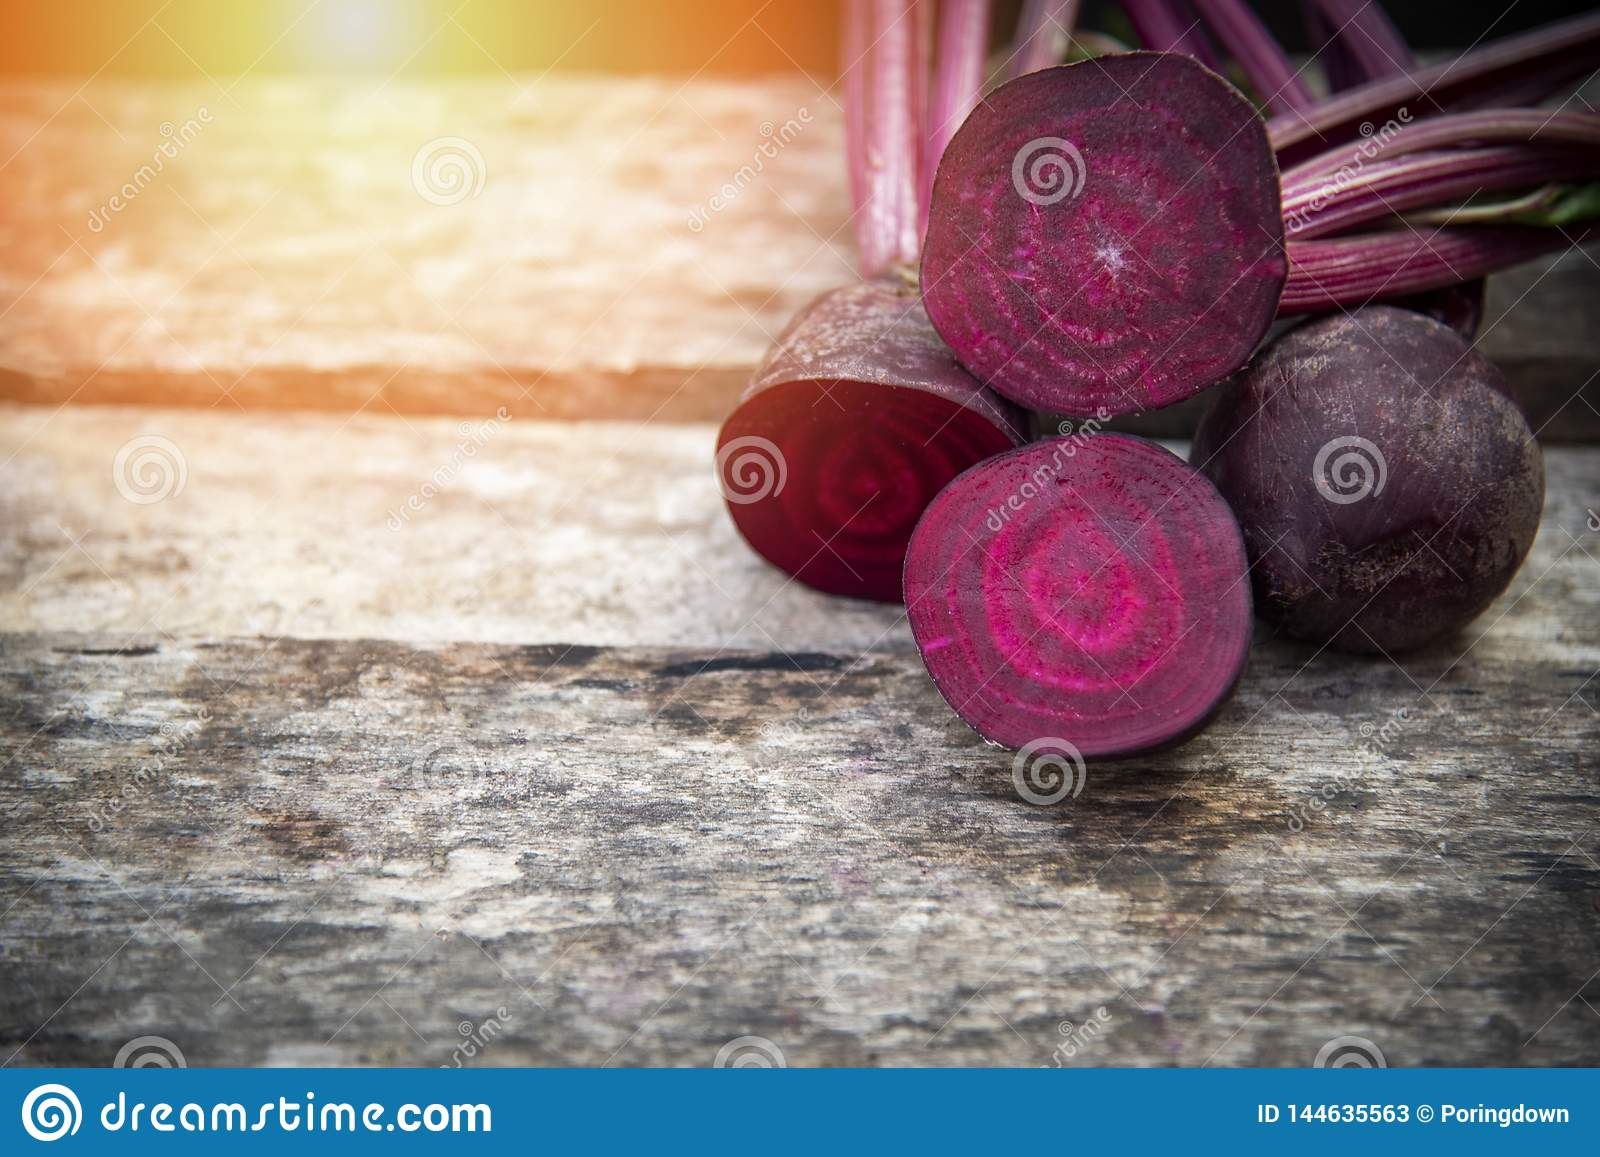 Beetroot slice Fresh red beet roots on wooden background